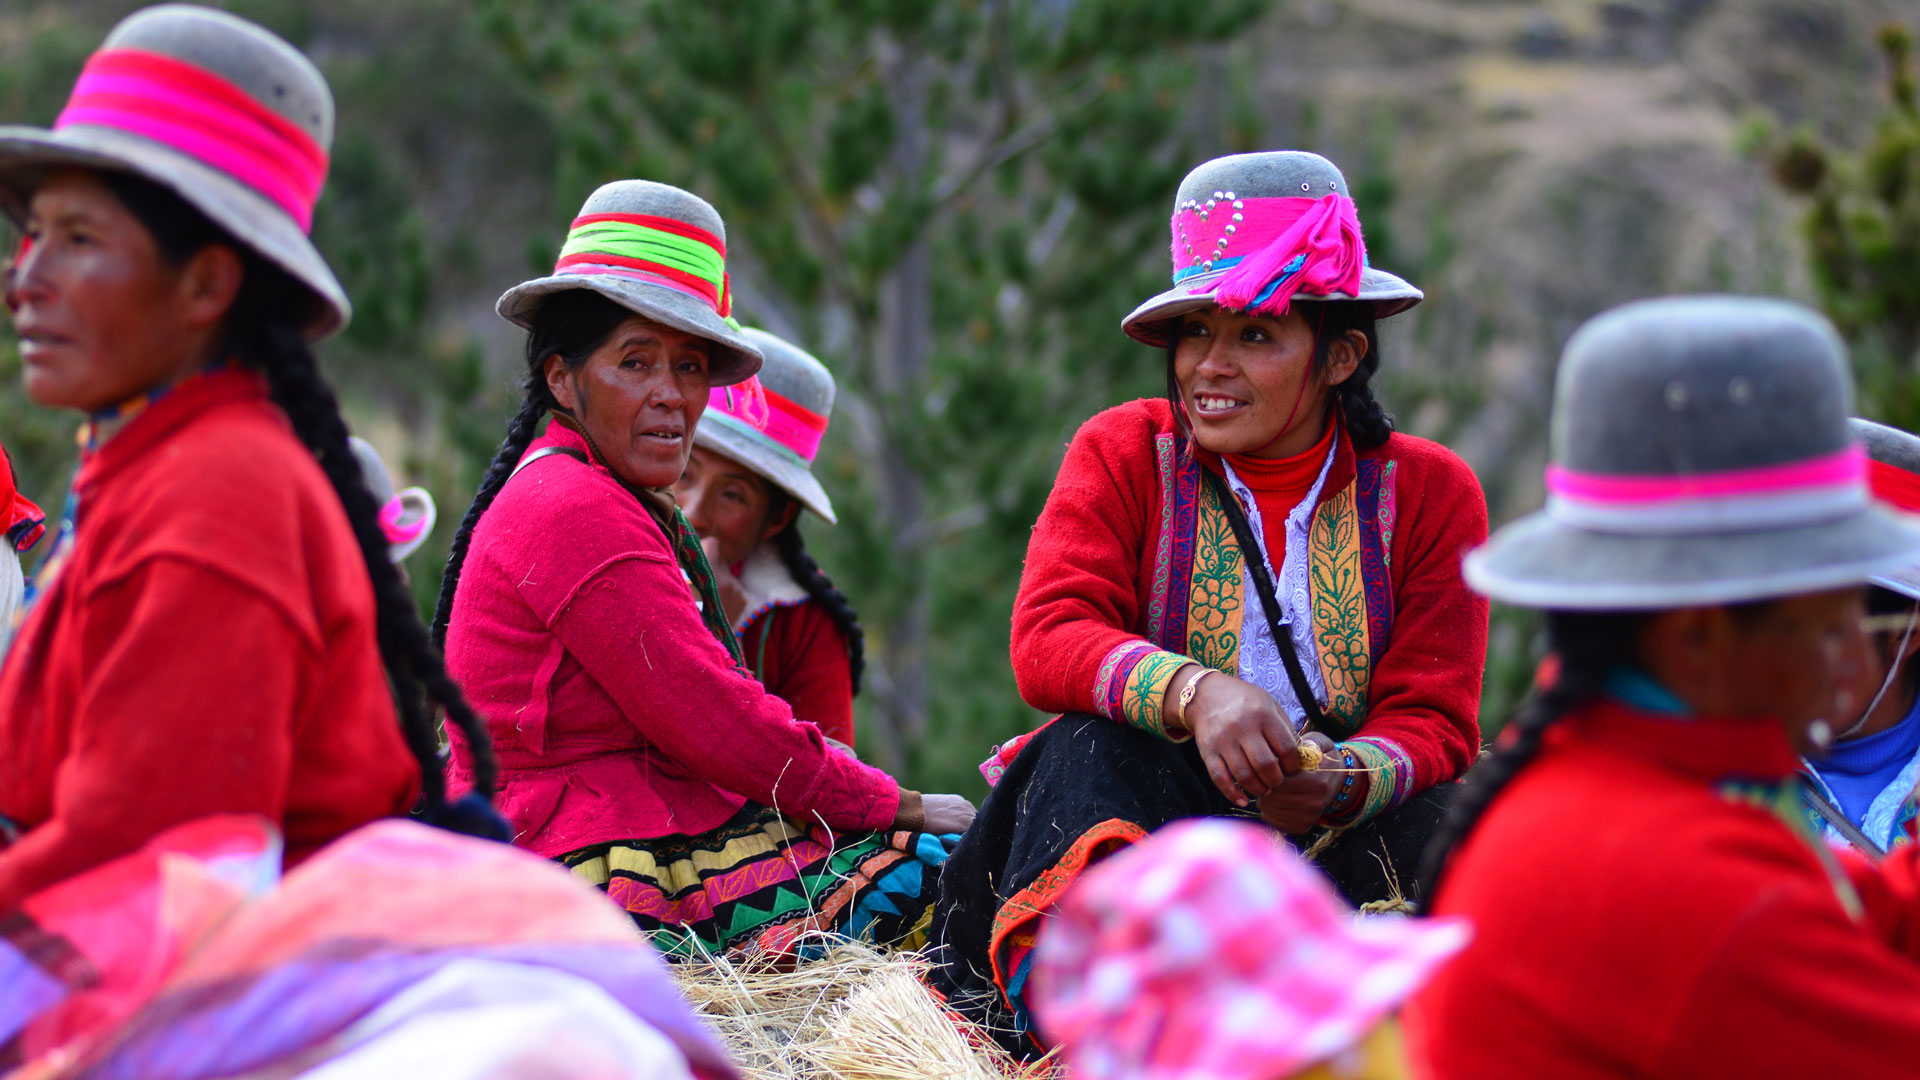 Mountain Villagers in traditional clothing, at the Q'eswachaka bridge festival, in Peru.